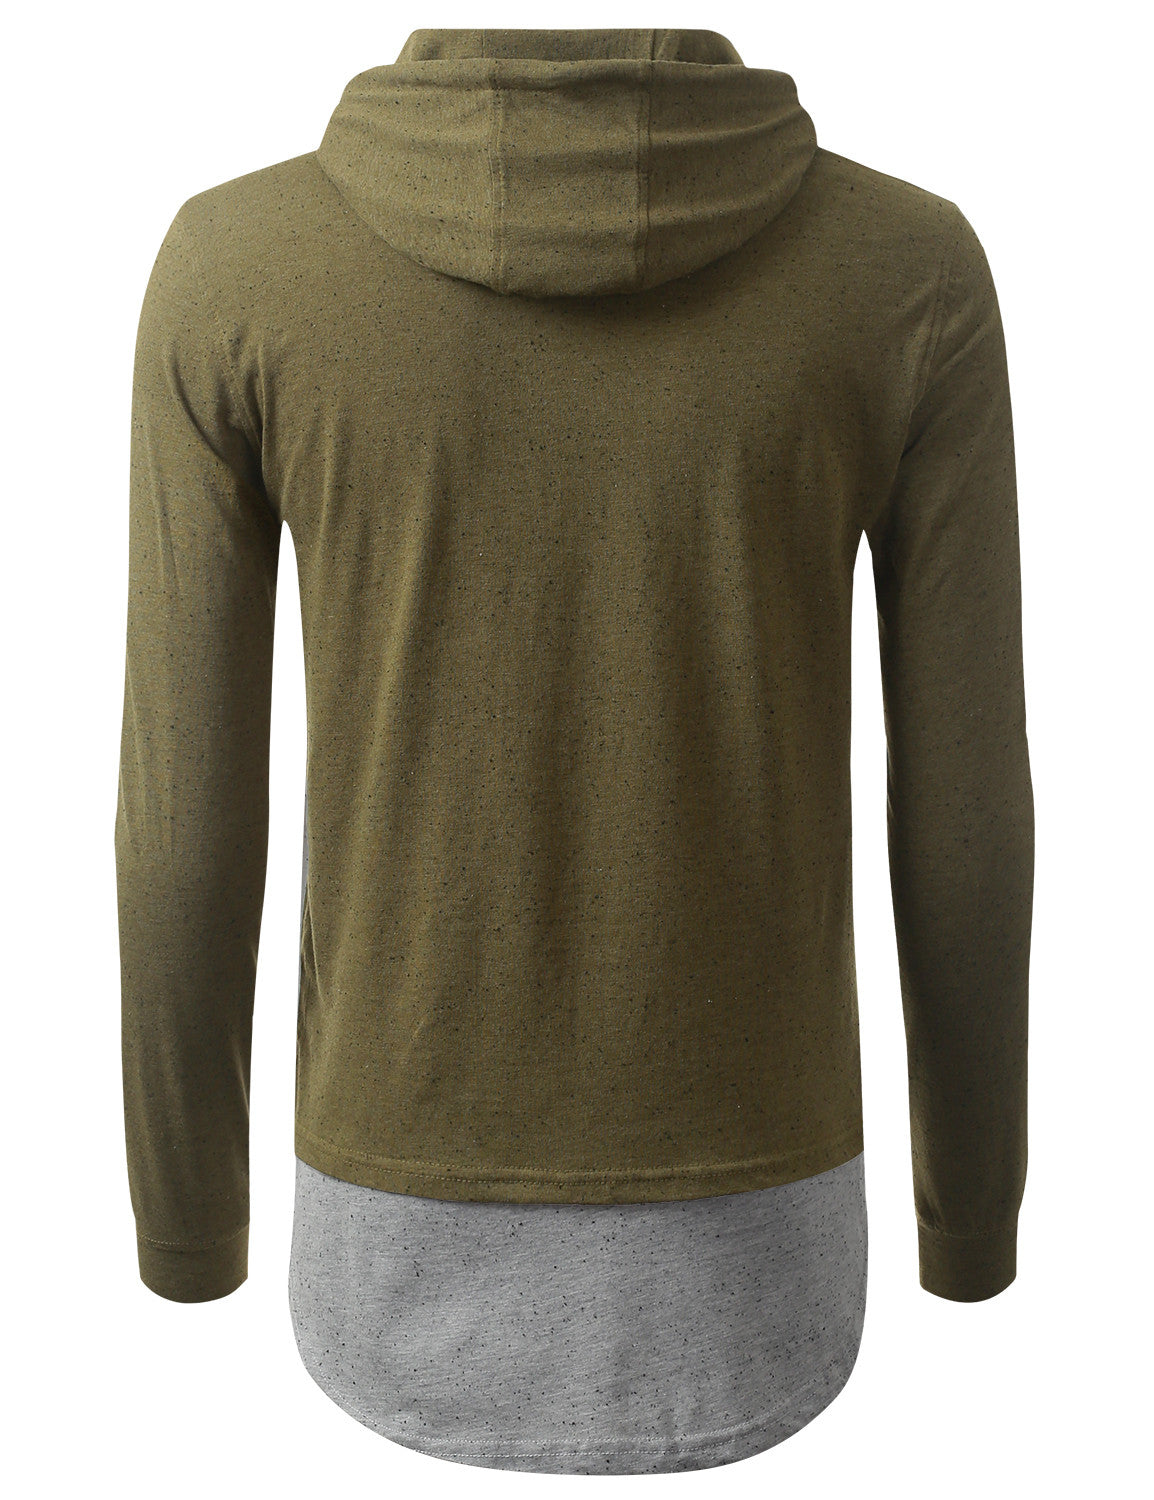 OLIVE Oreo Long Sleeve Hoodie Sweatshirts - URBANCREWS